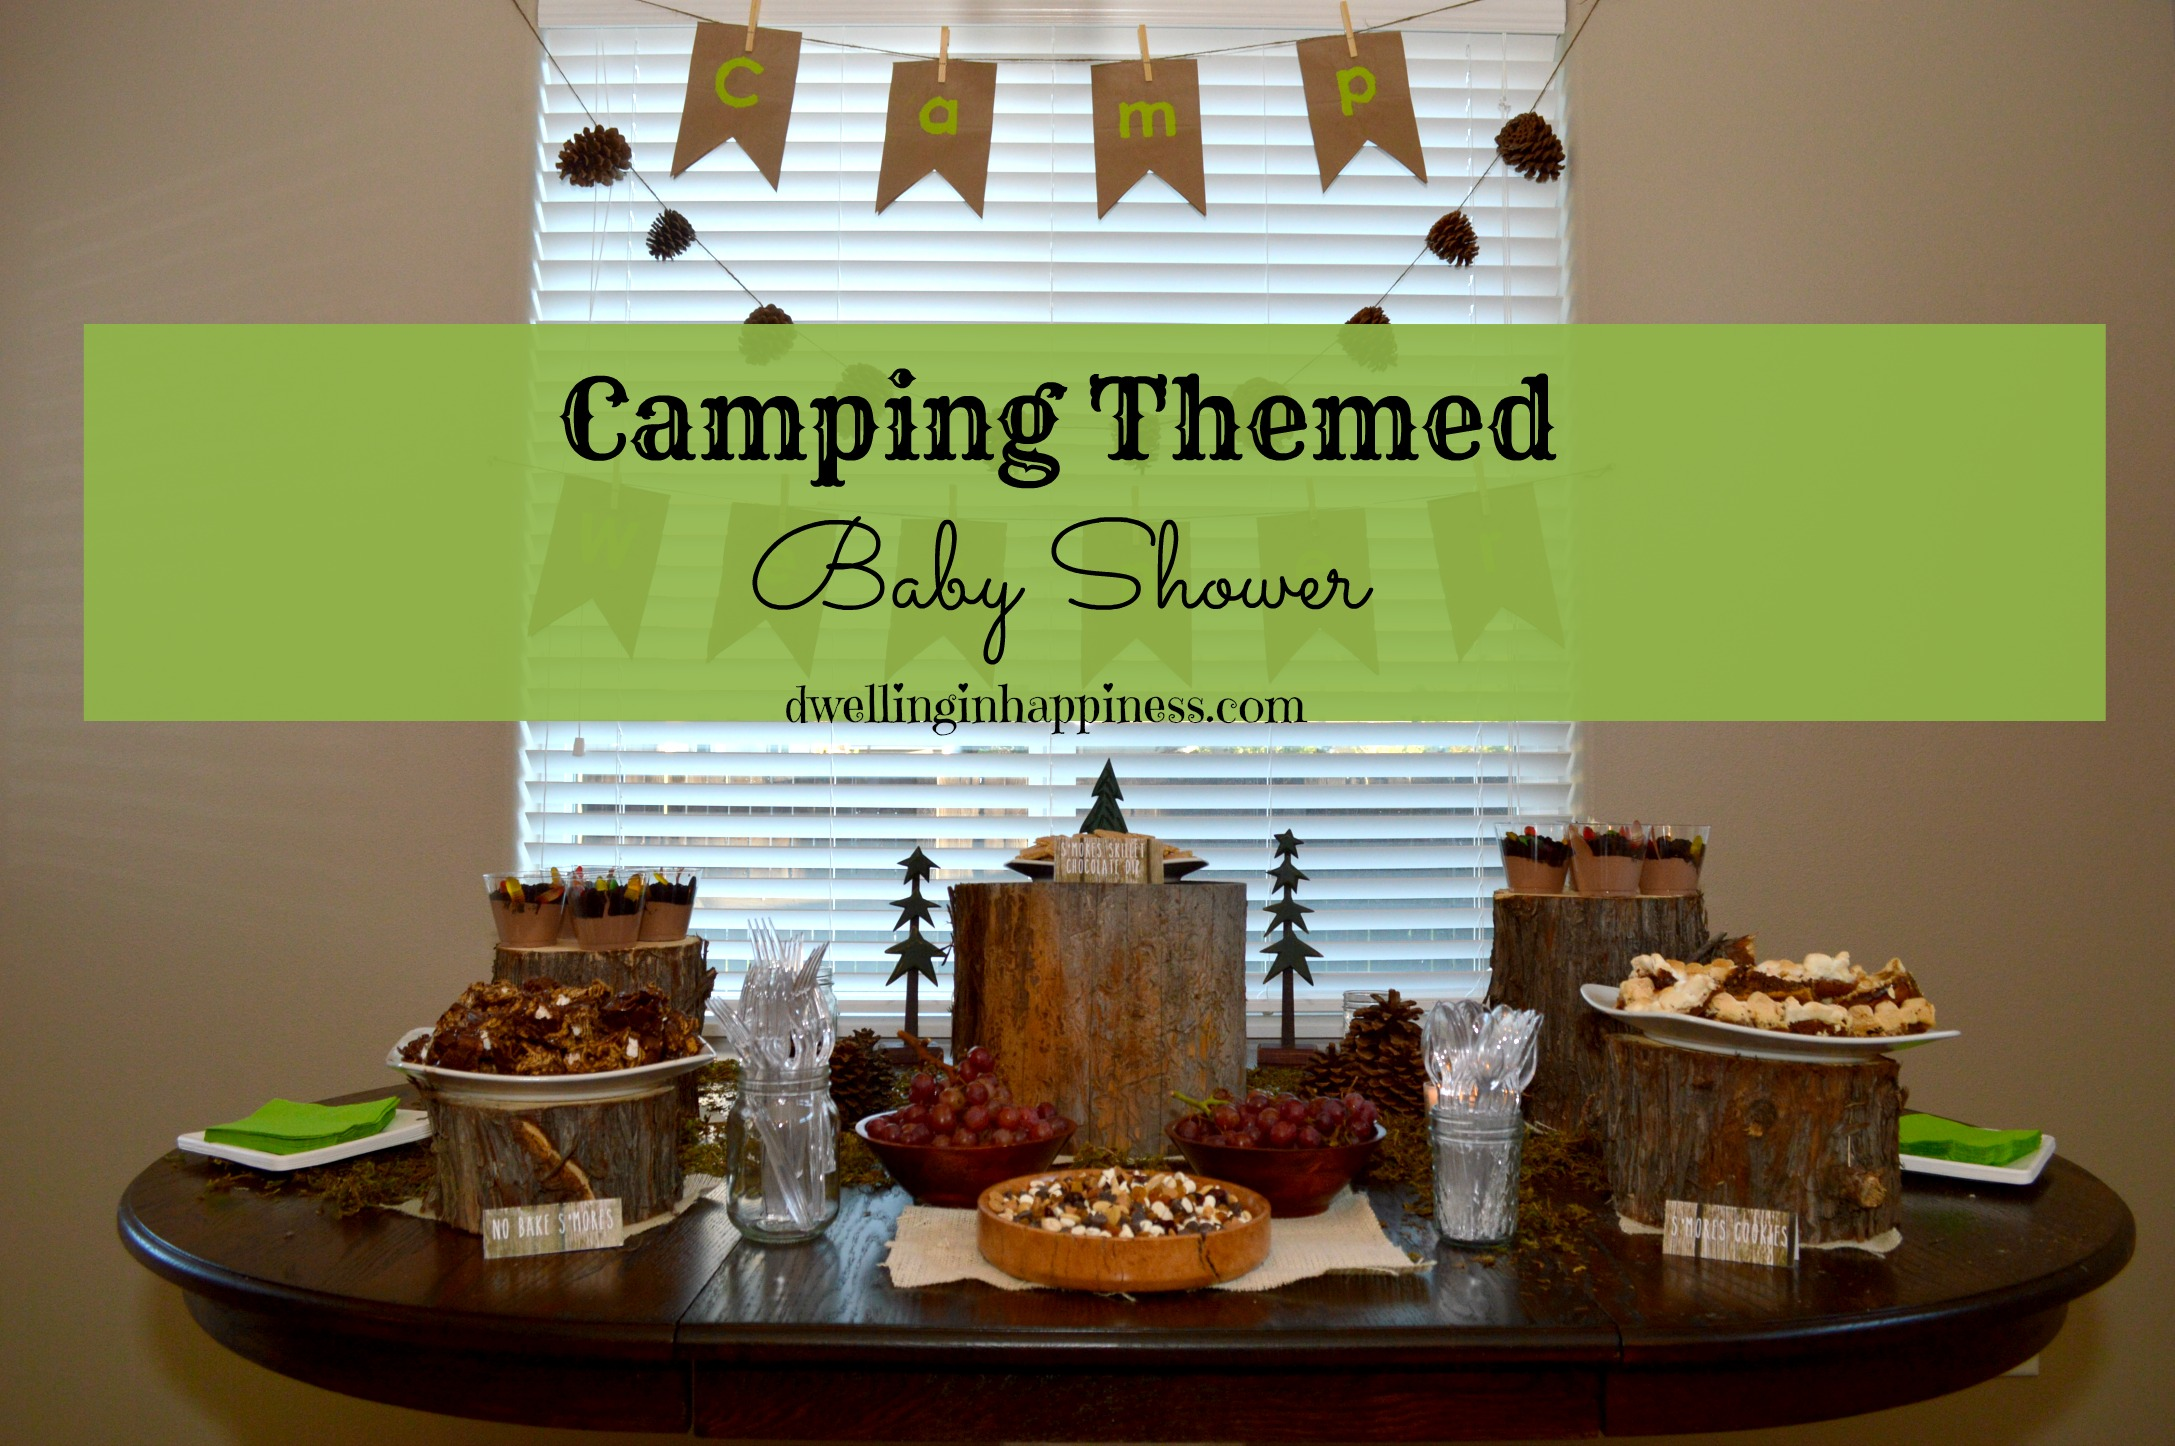 Exceptional Things Are Finally Calming Down A Little Around Here. Our Holiday Weekend  Was A Super Busy One. As You Can See, We Threw A Camping Themed Baby Shower  ...